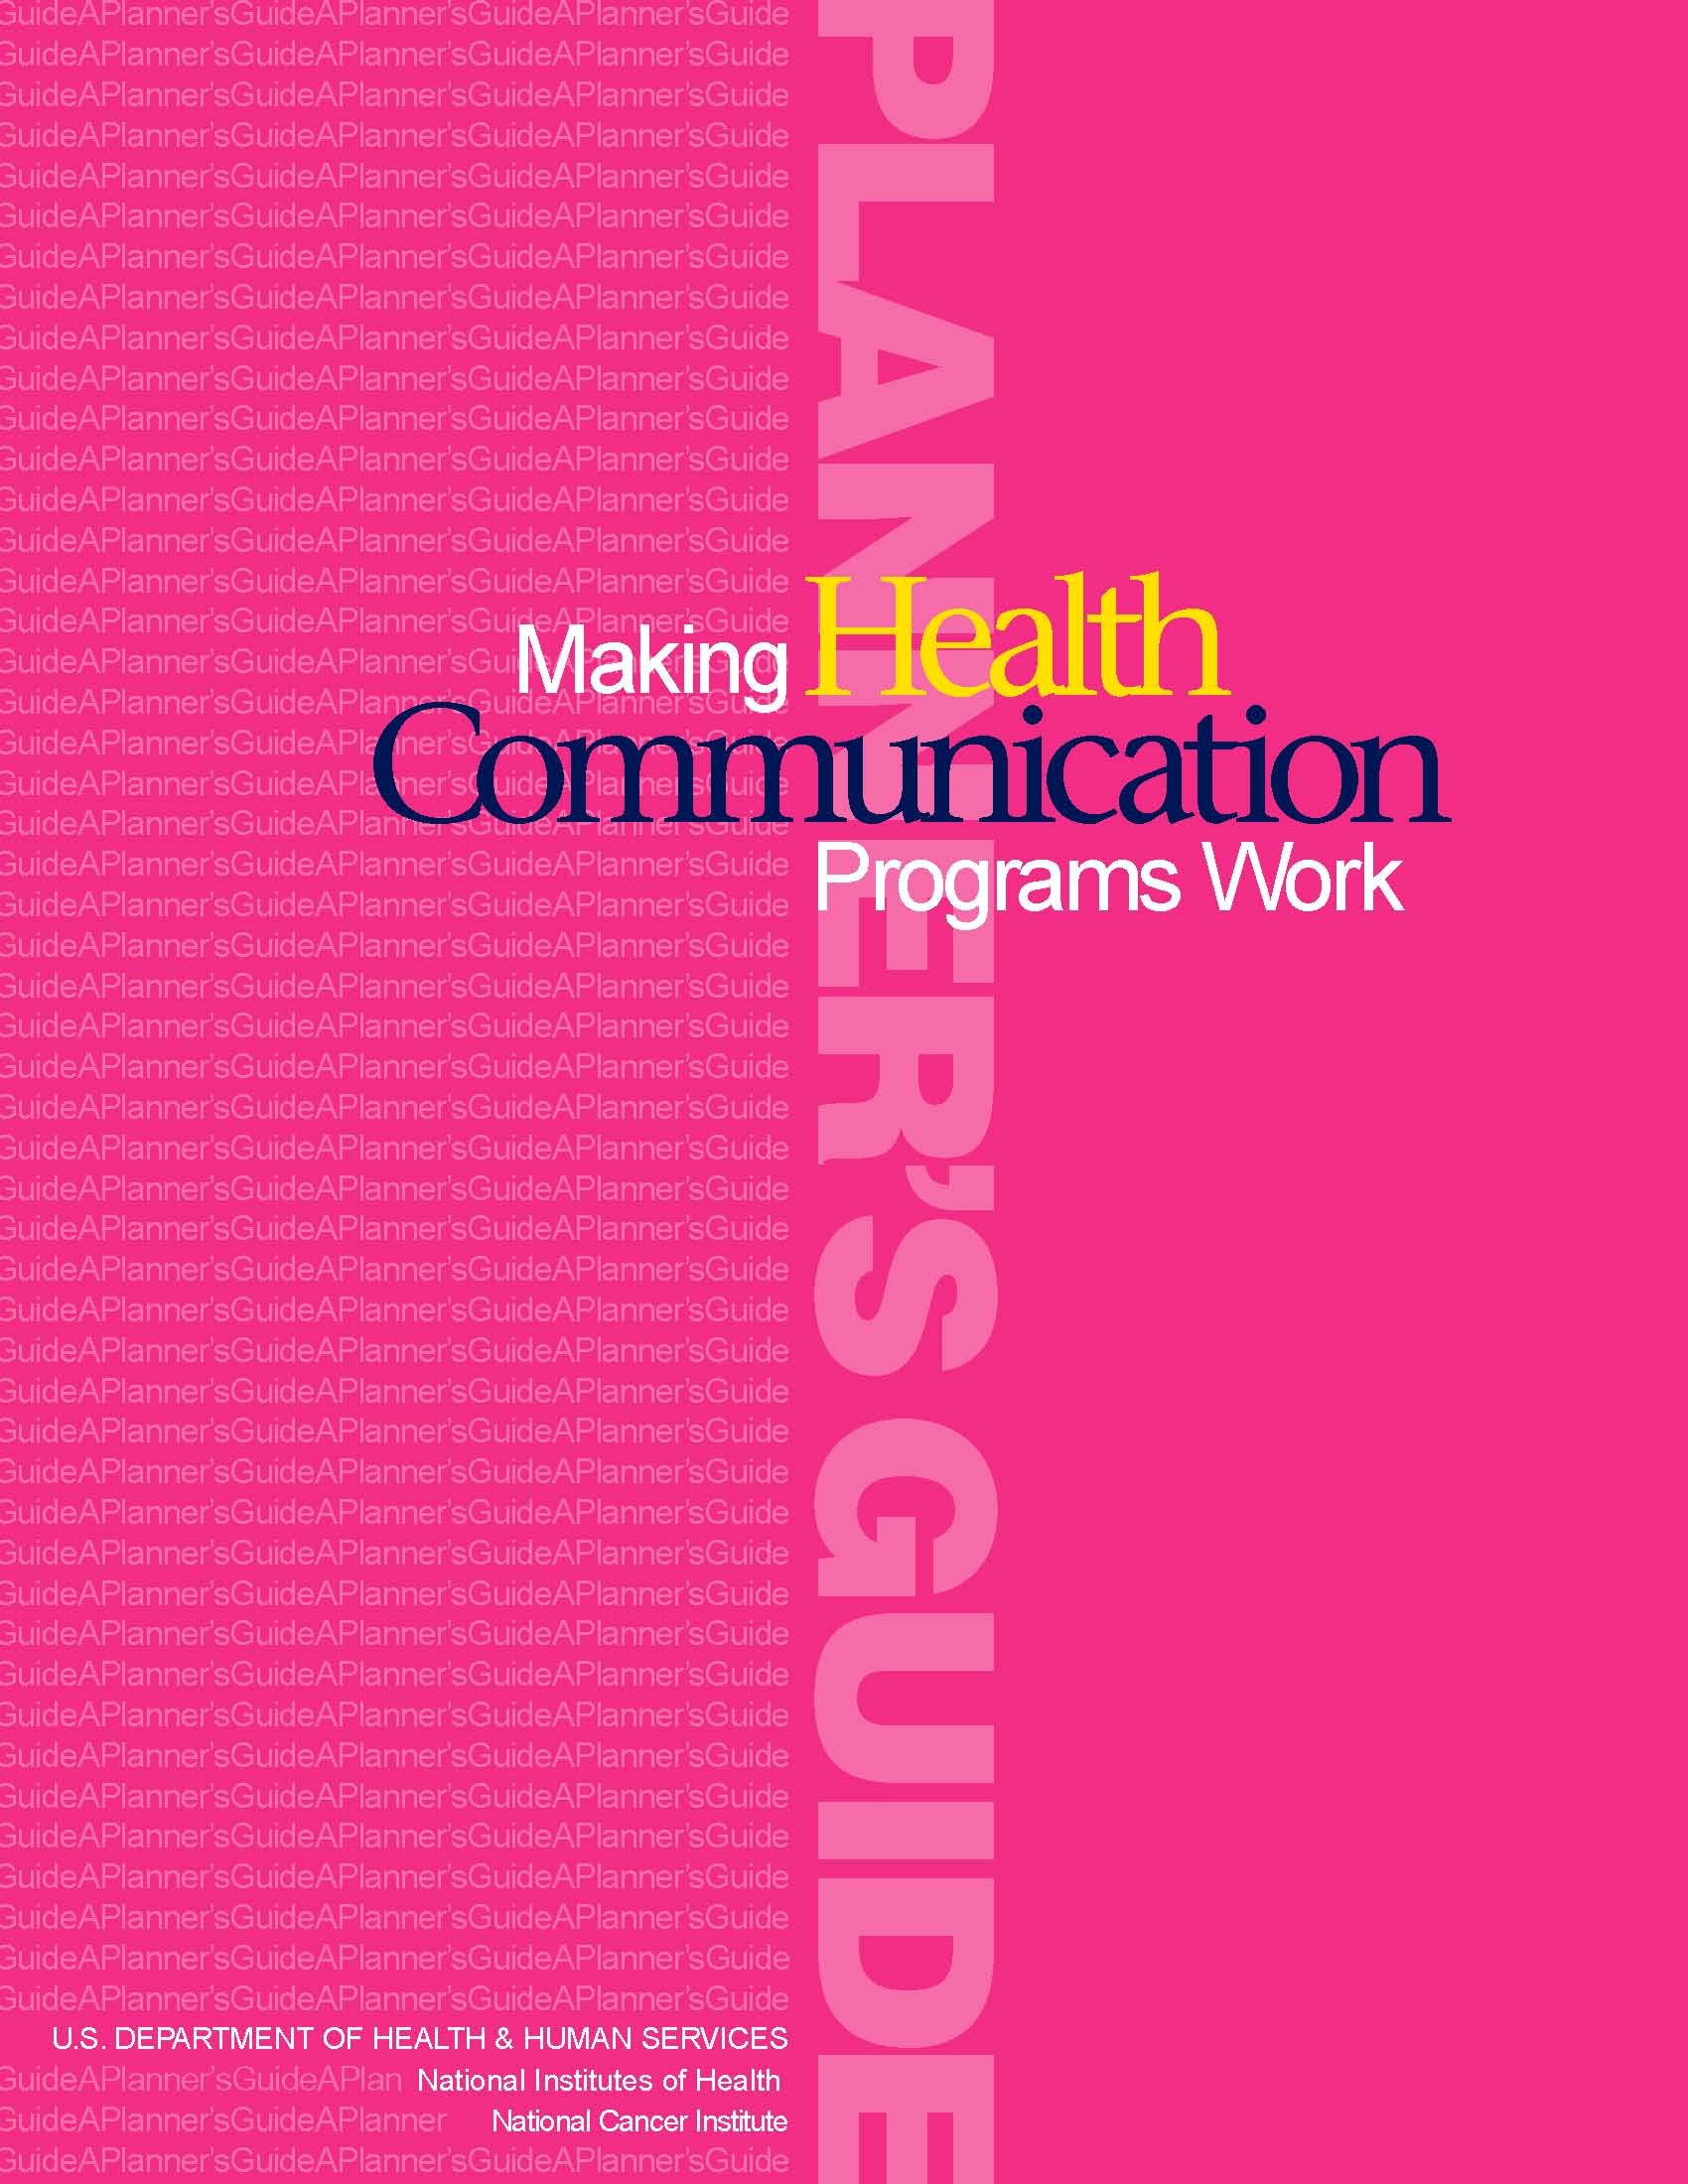 Making Health Communications Work